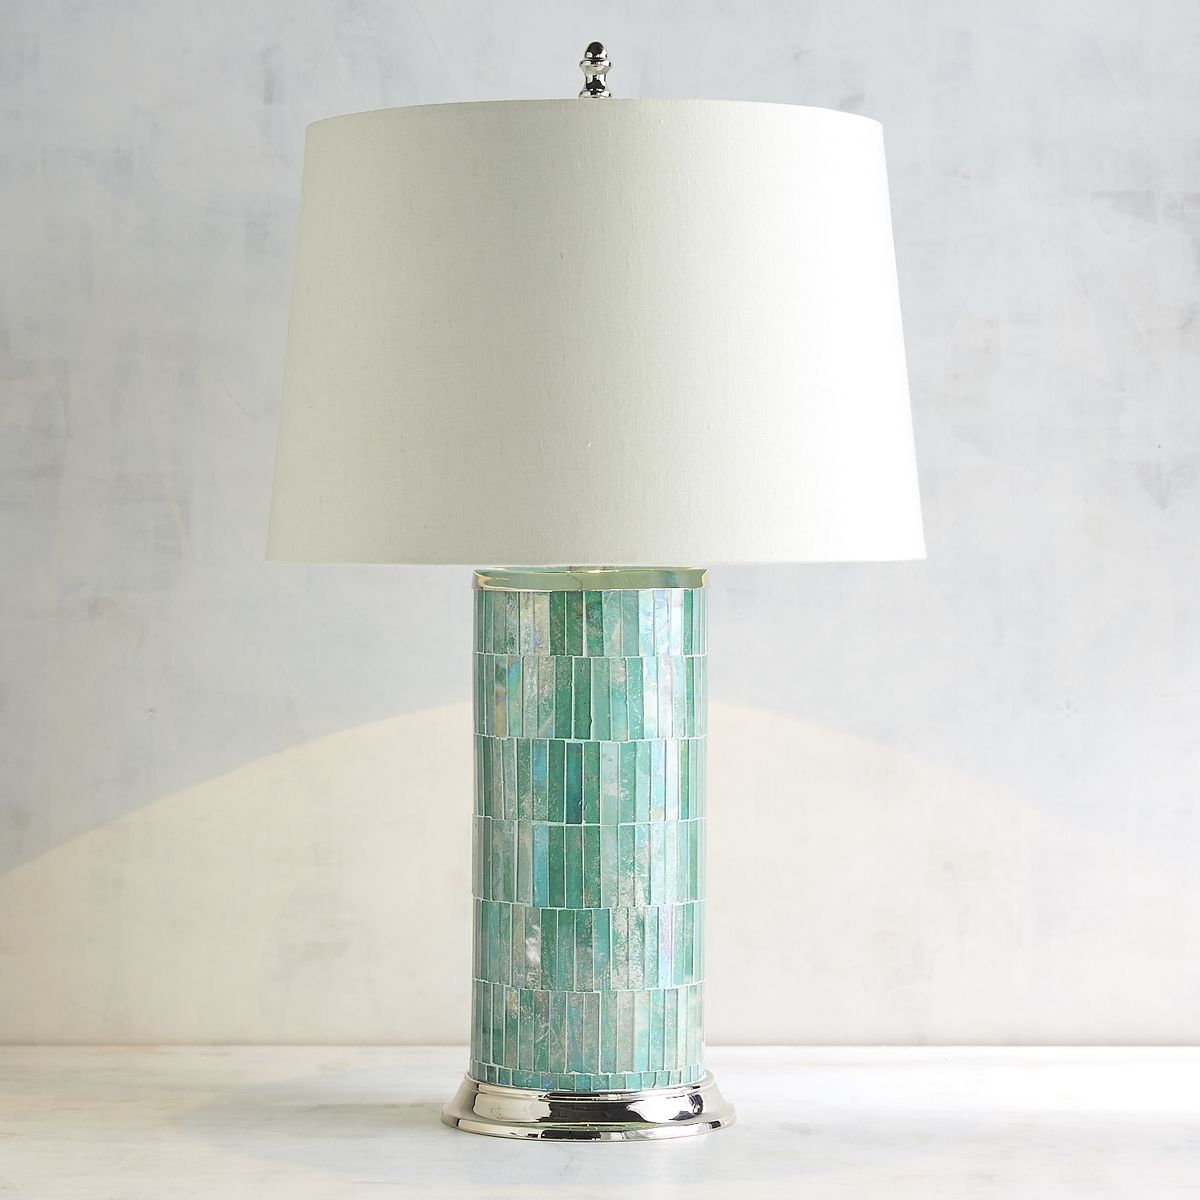 Mosaic column aqua table lamp everything turquoise mosaic column aqua table lamp geotapseo Images